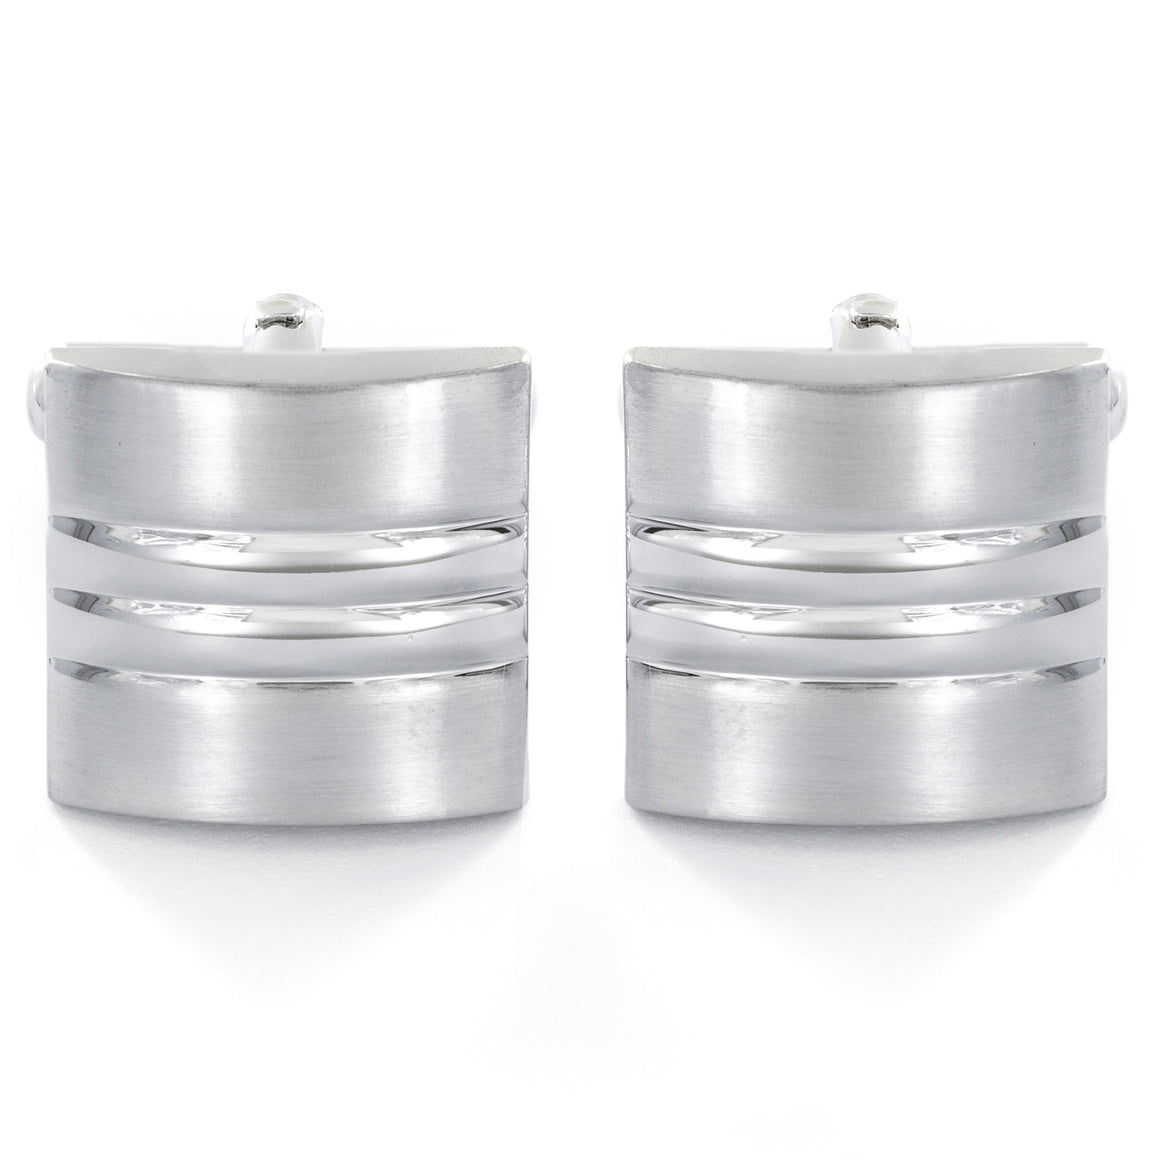 Men's Triple Grooved Square Cuff Links